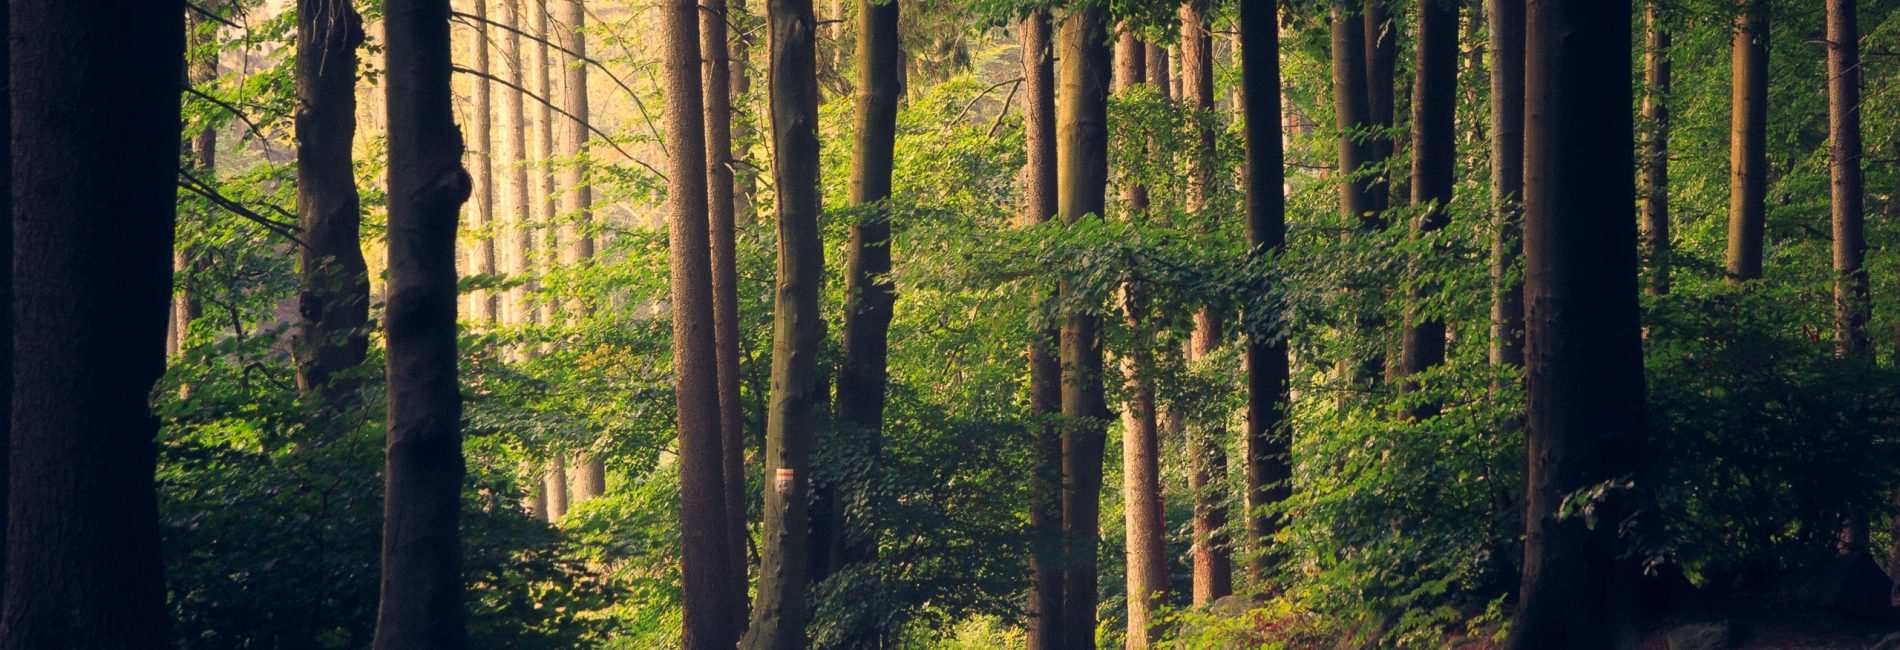 How nature can help us healing